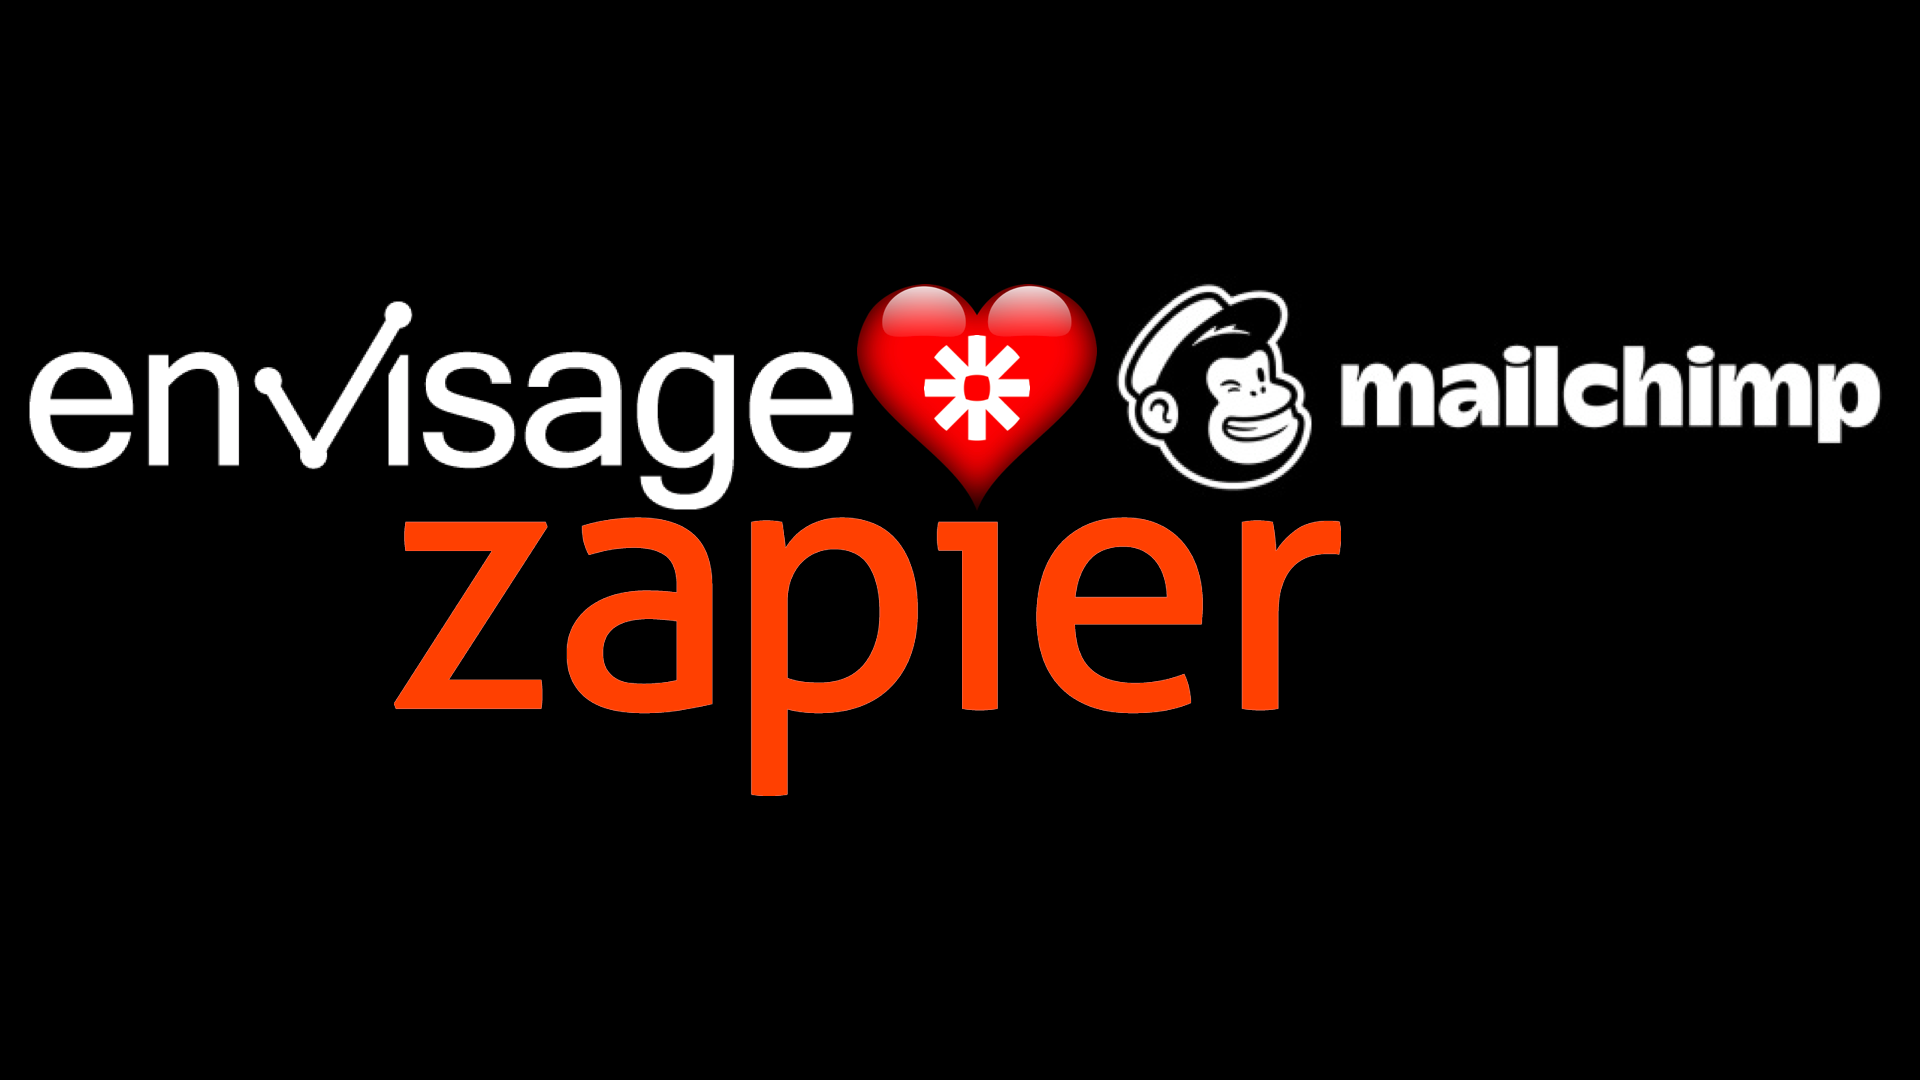 envisage is not affiliated with or endorsed by Mailchimp or Zapier.